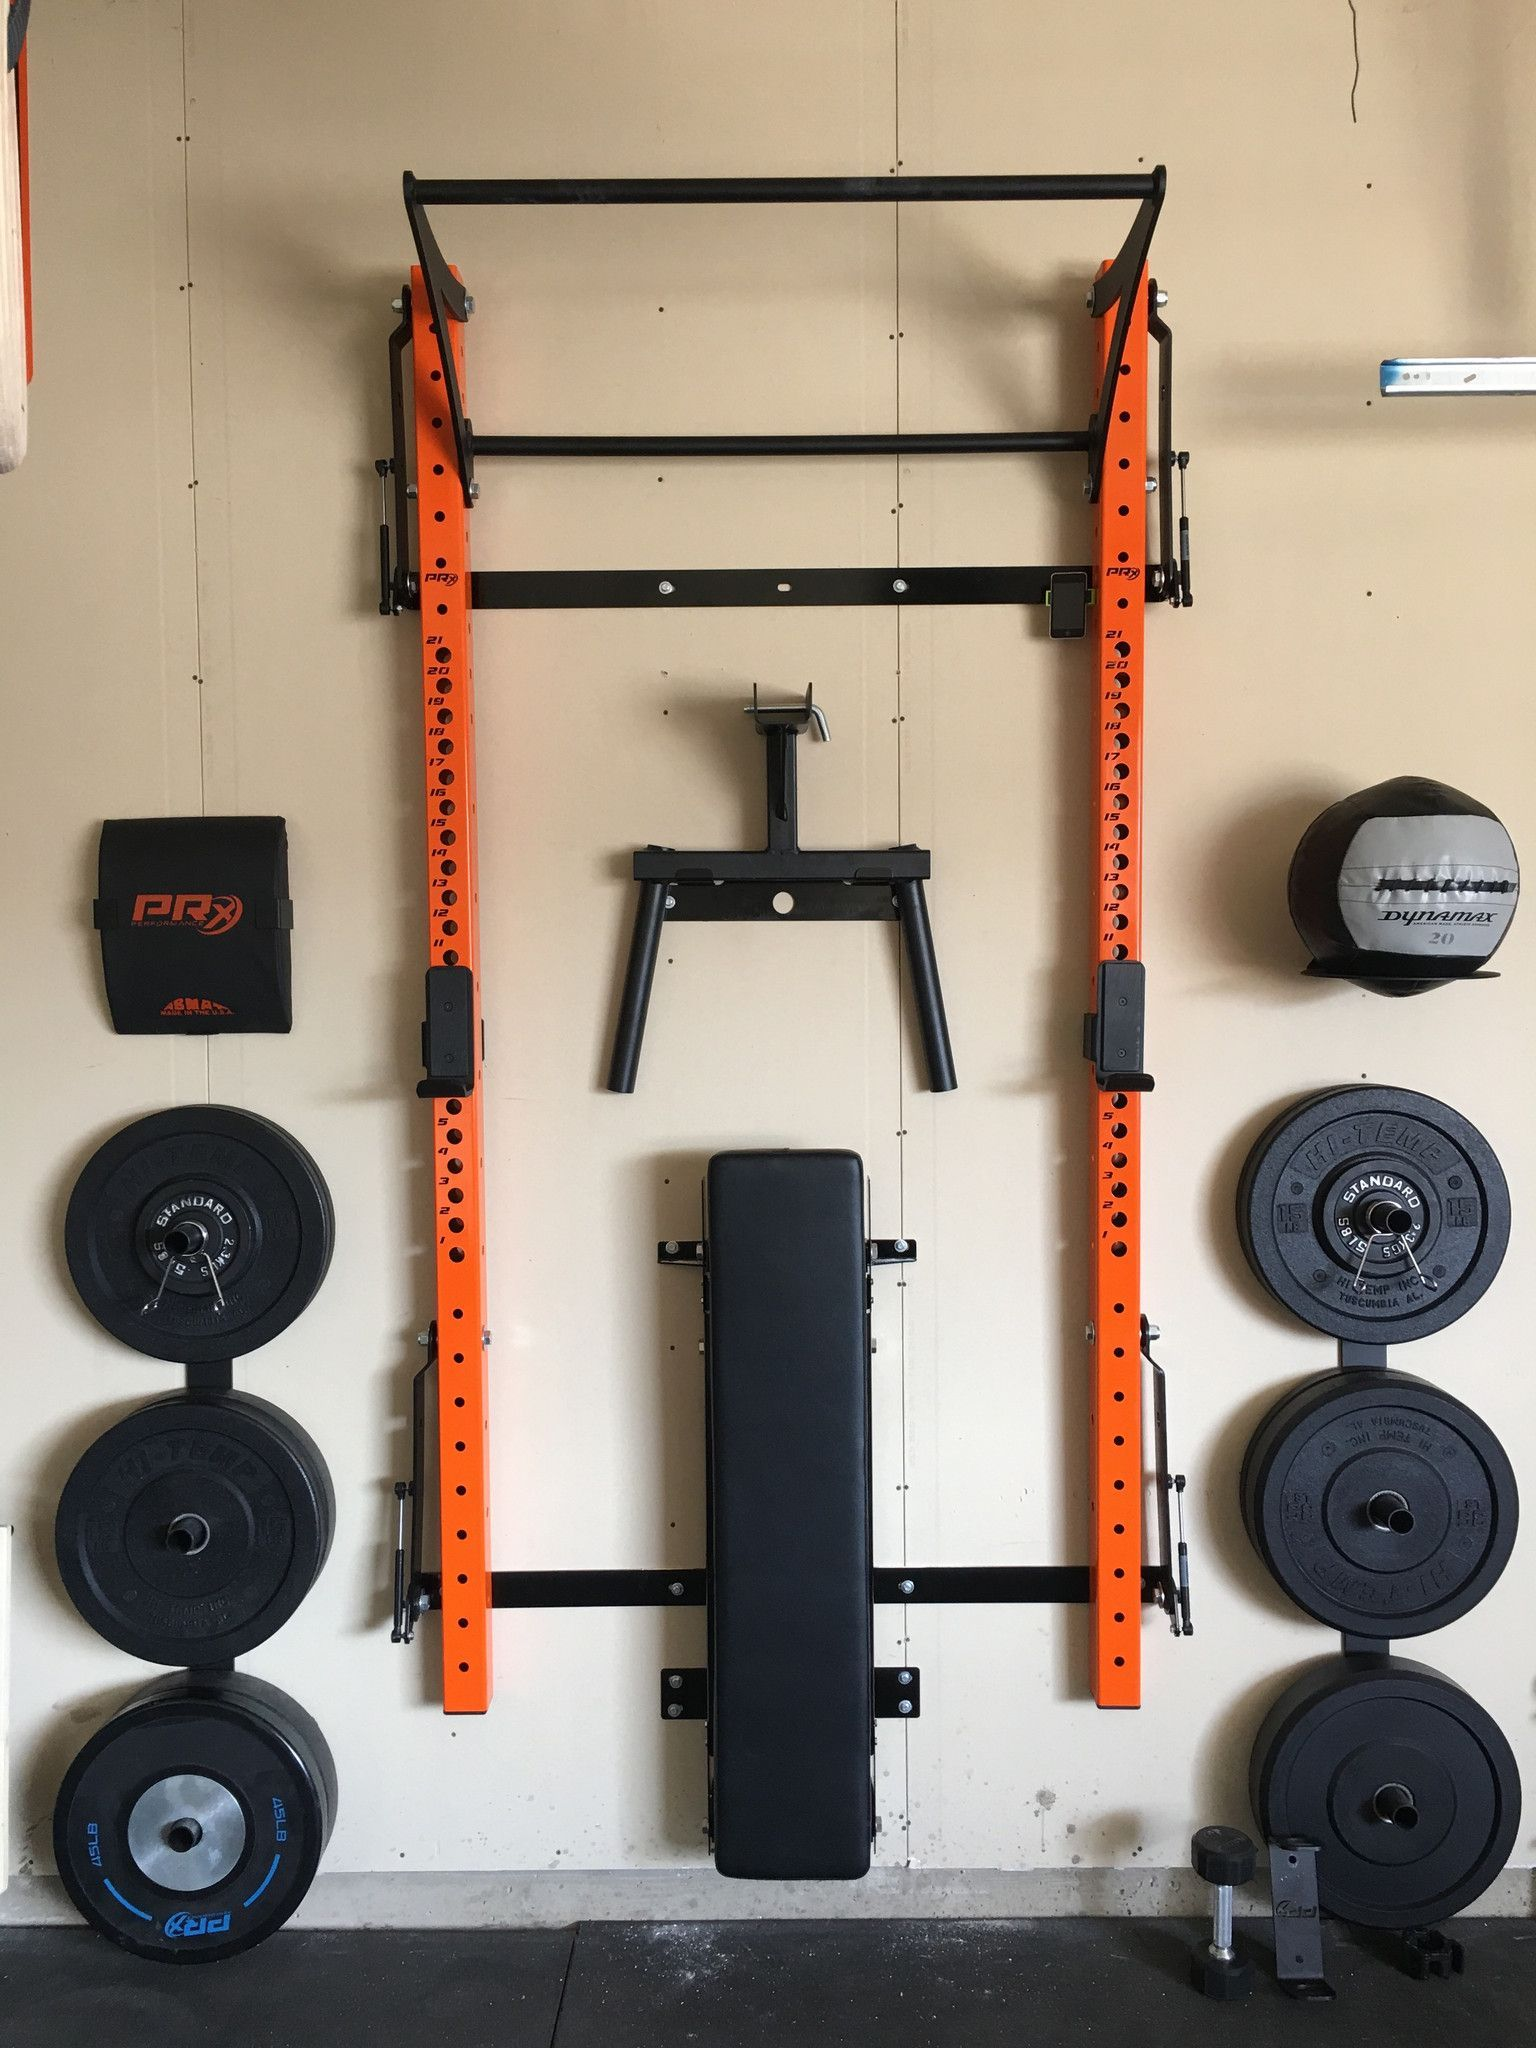 Prx multi purpose storage solution in garage gym at home